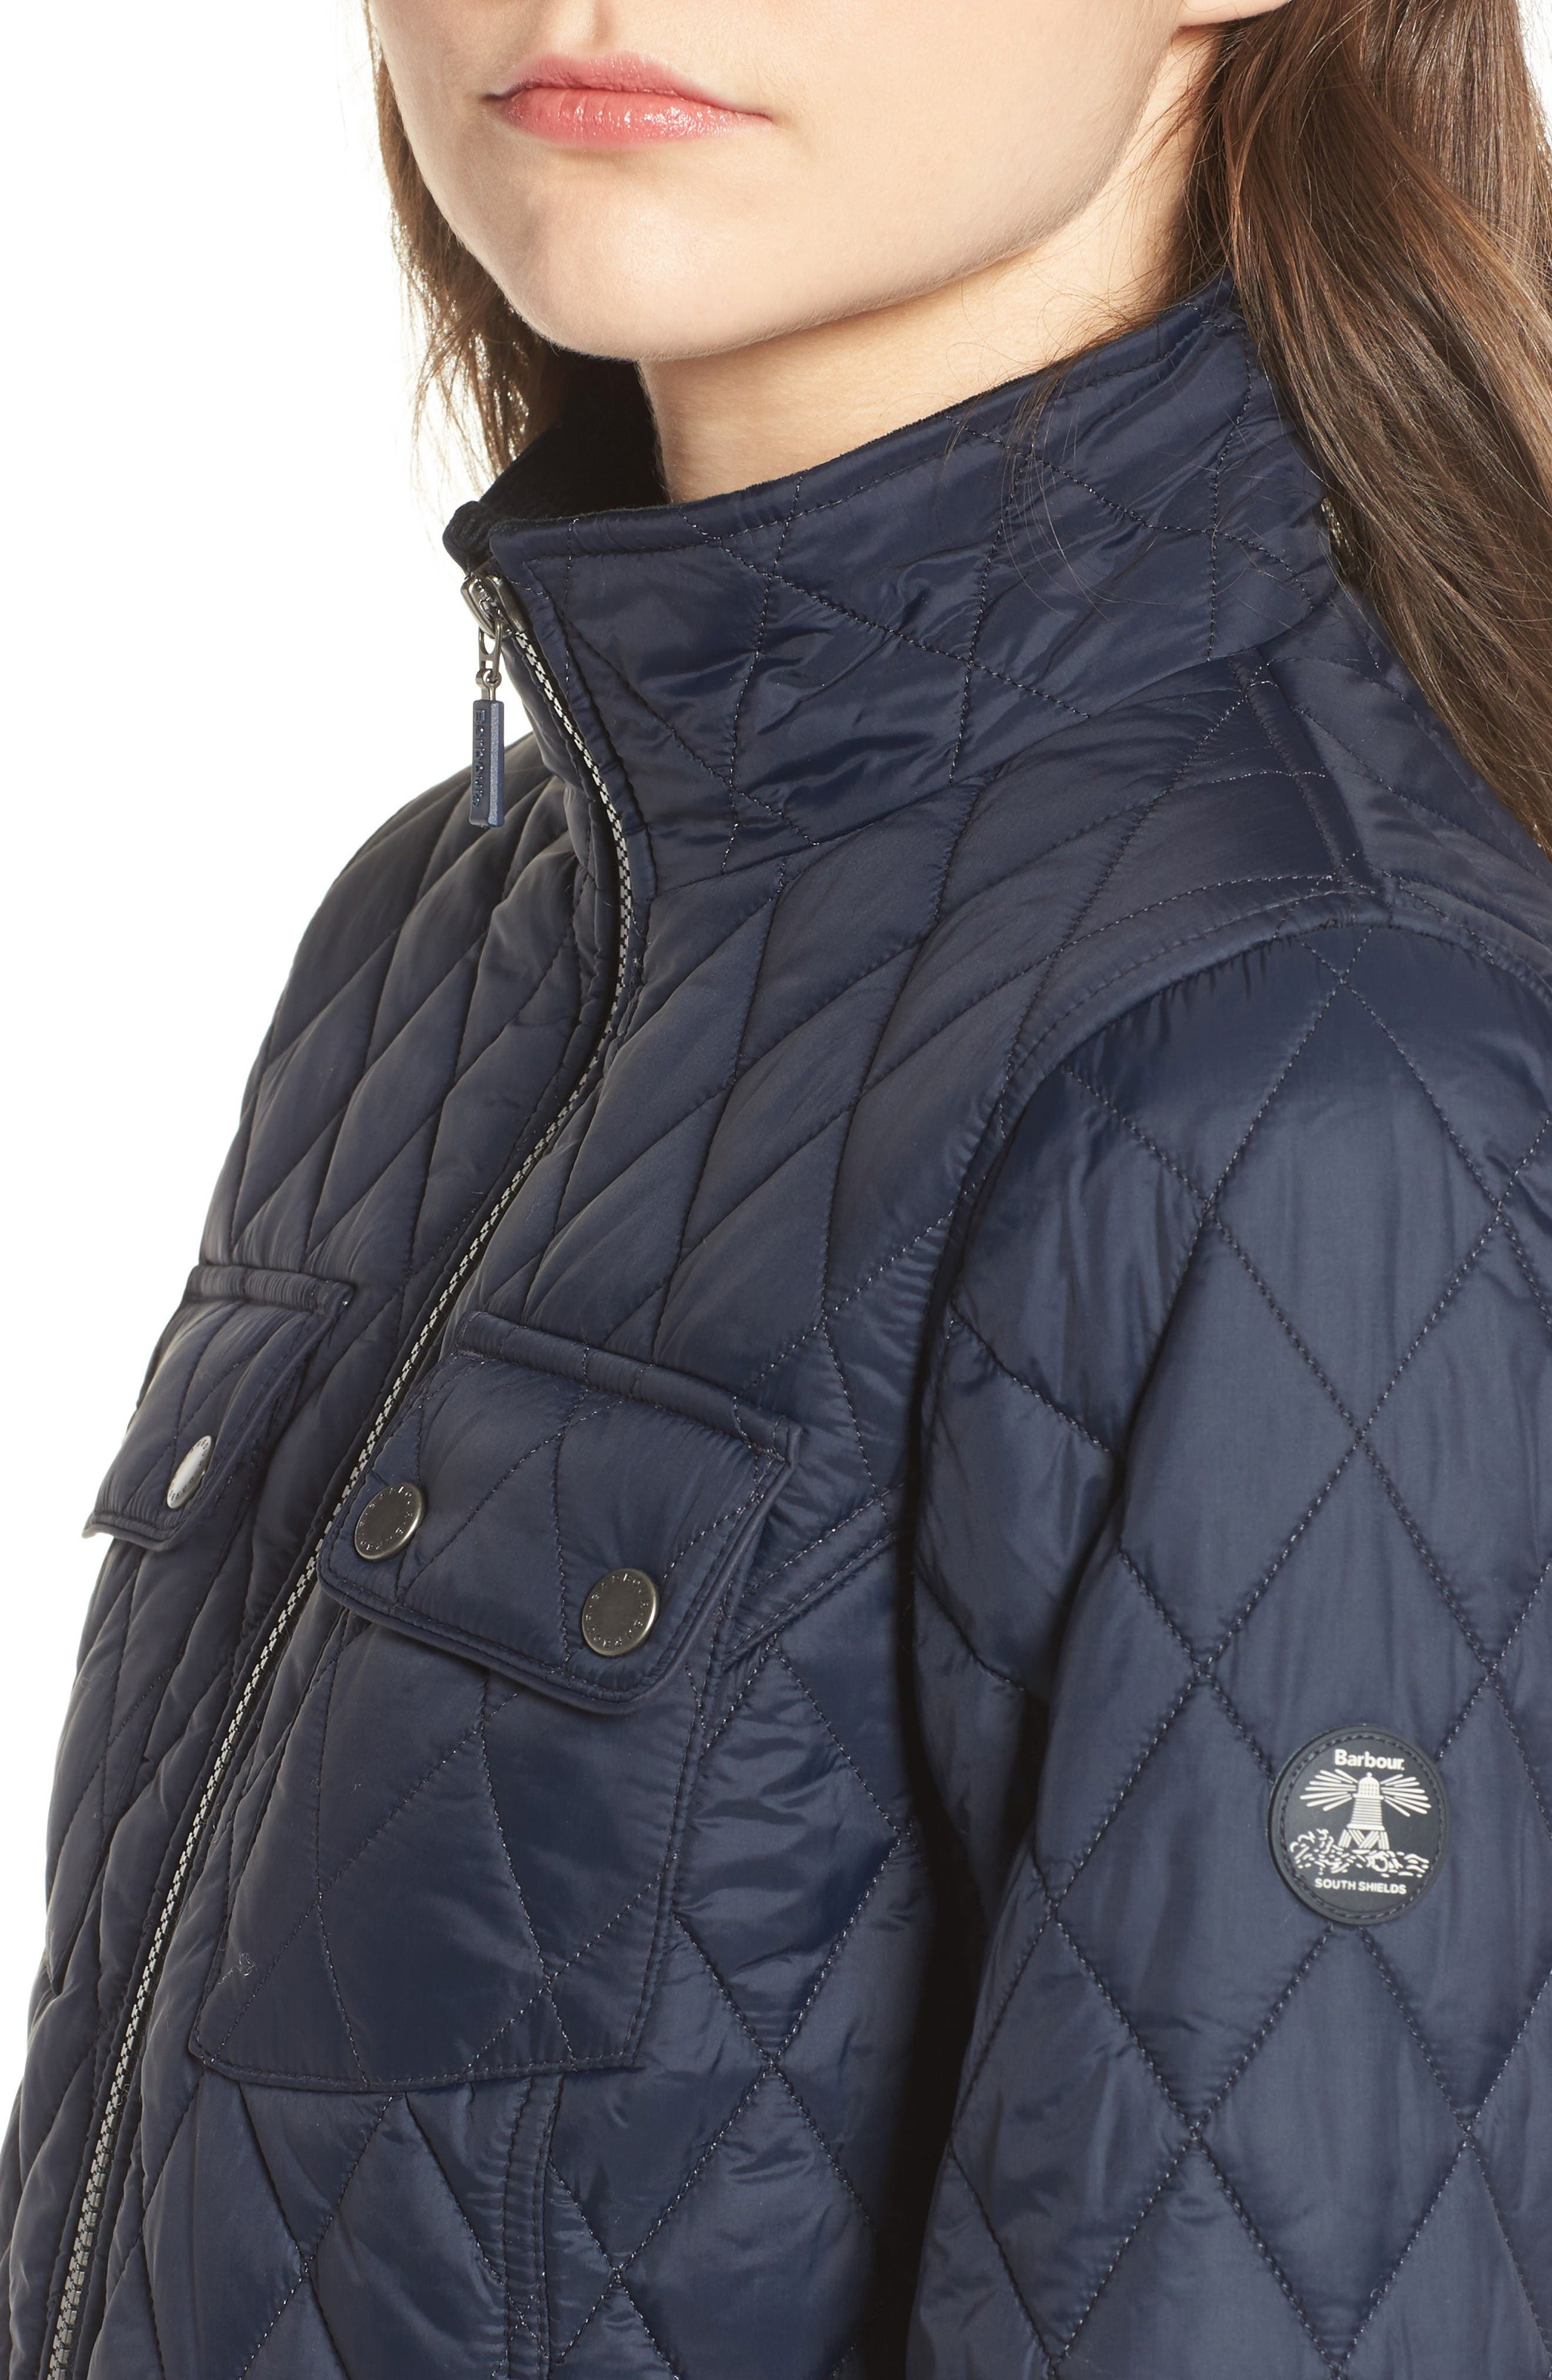 Dolostone Quilted Jacket,                             Alternate thumbnail 4, color,                             Dark Navy